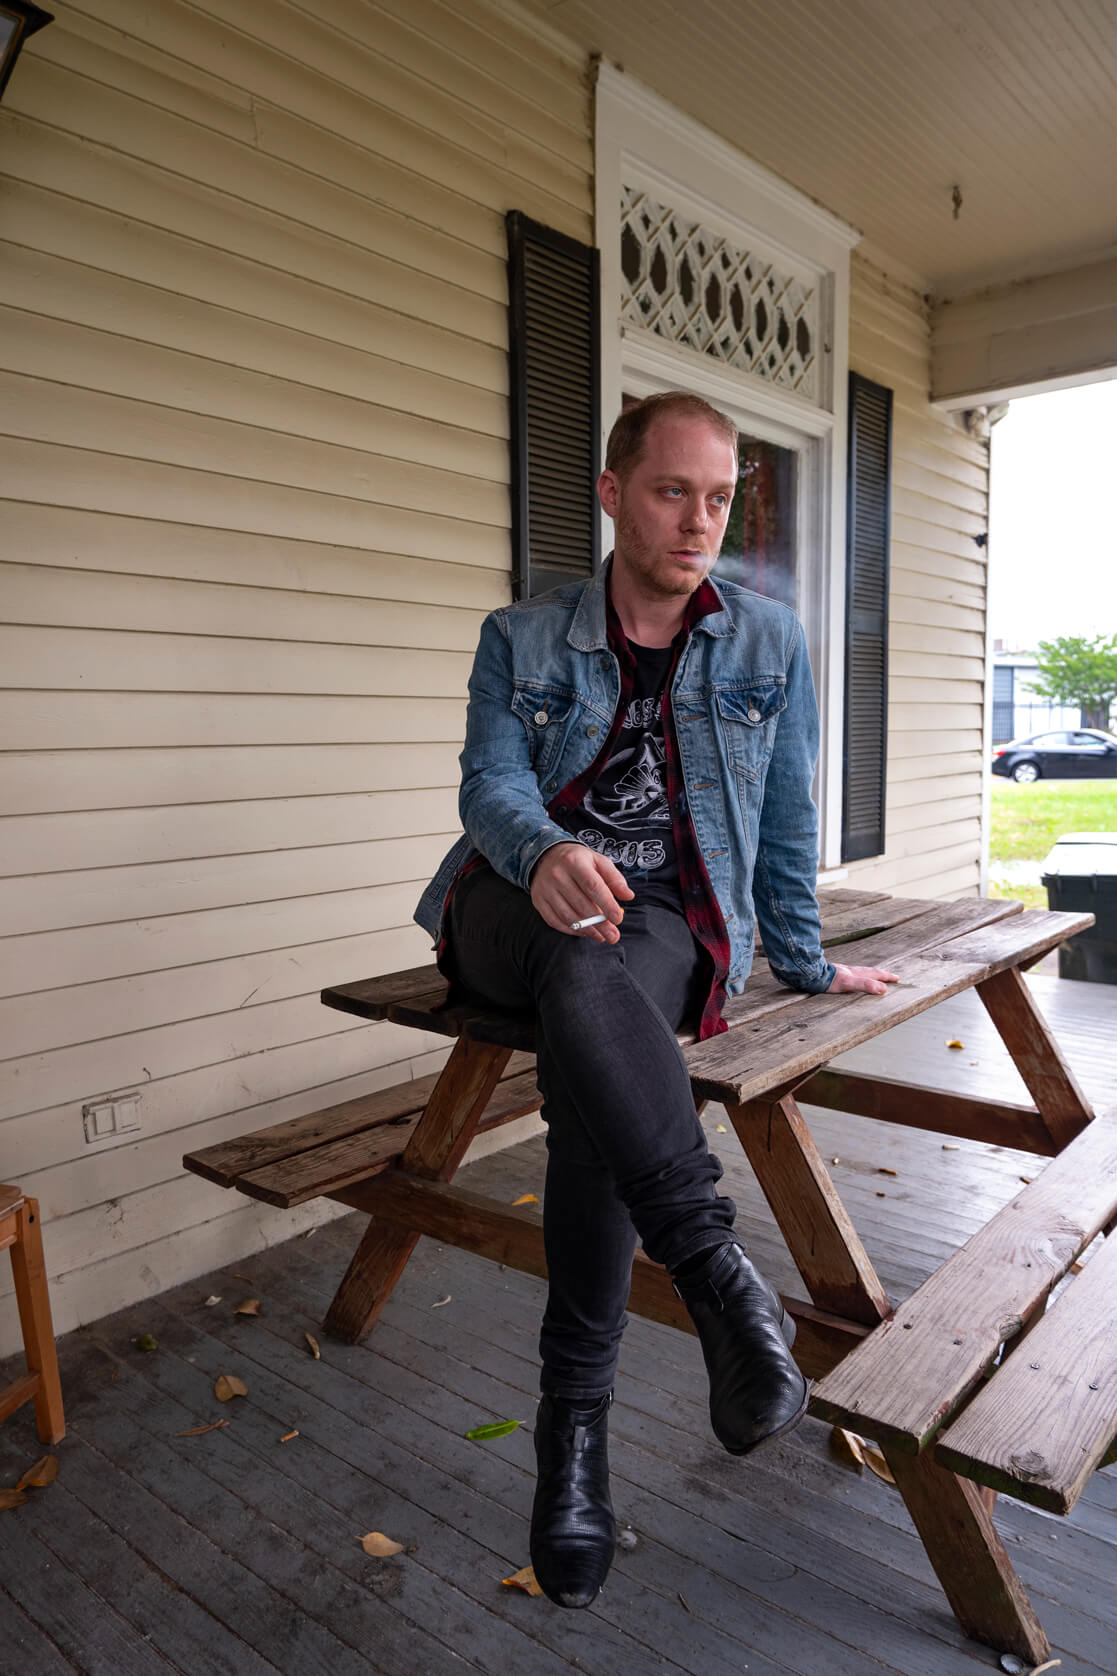 Picture of Arkansas director sitting on a picnic table and smoking a cigarette